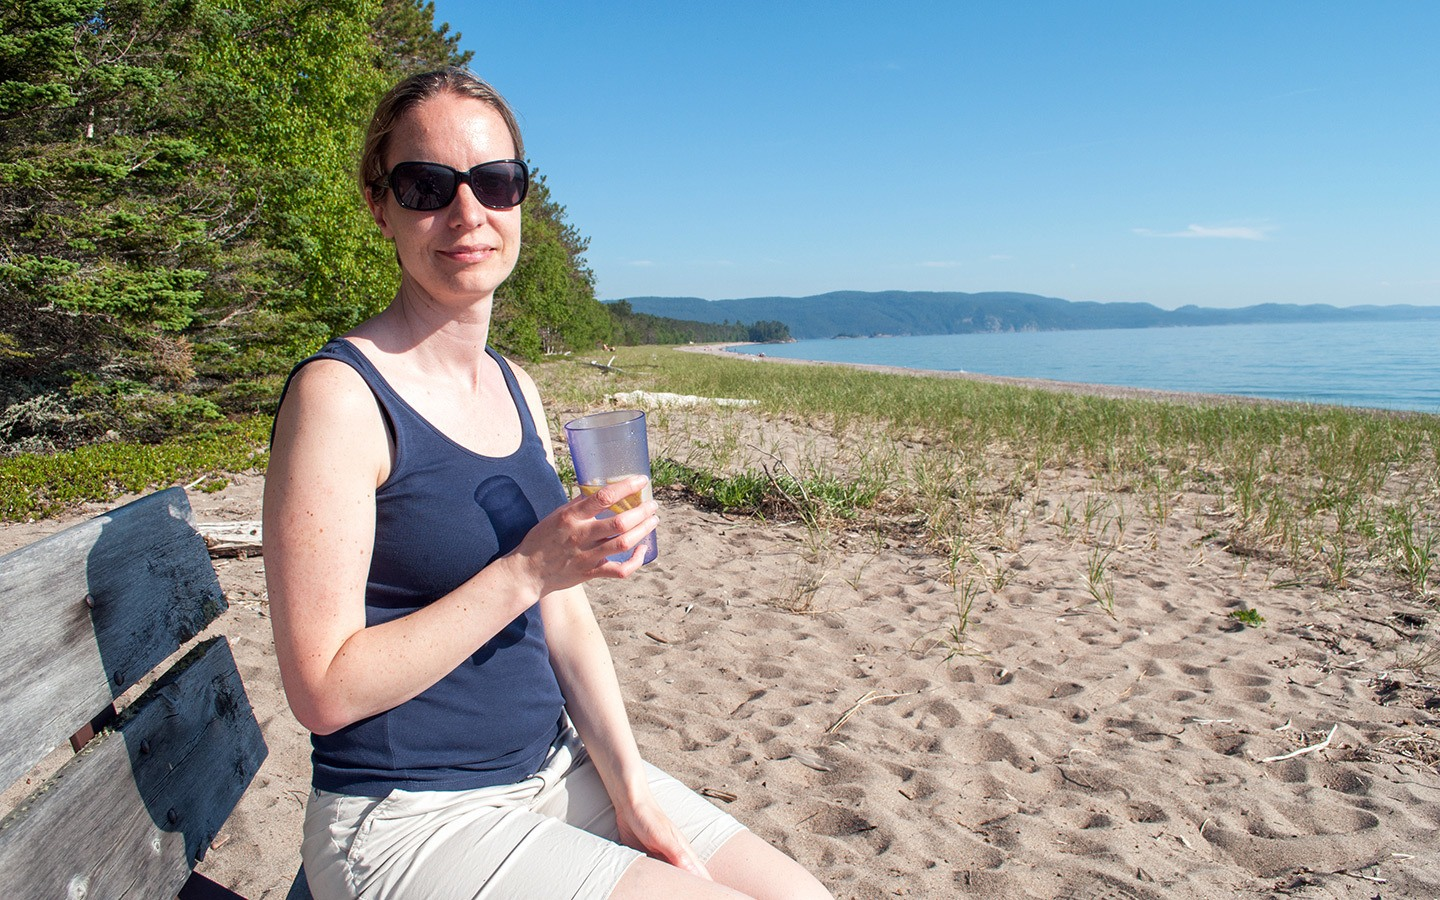 Drinks on the beach at Lake Superior Provincial Park